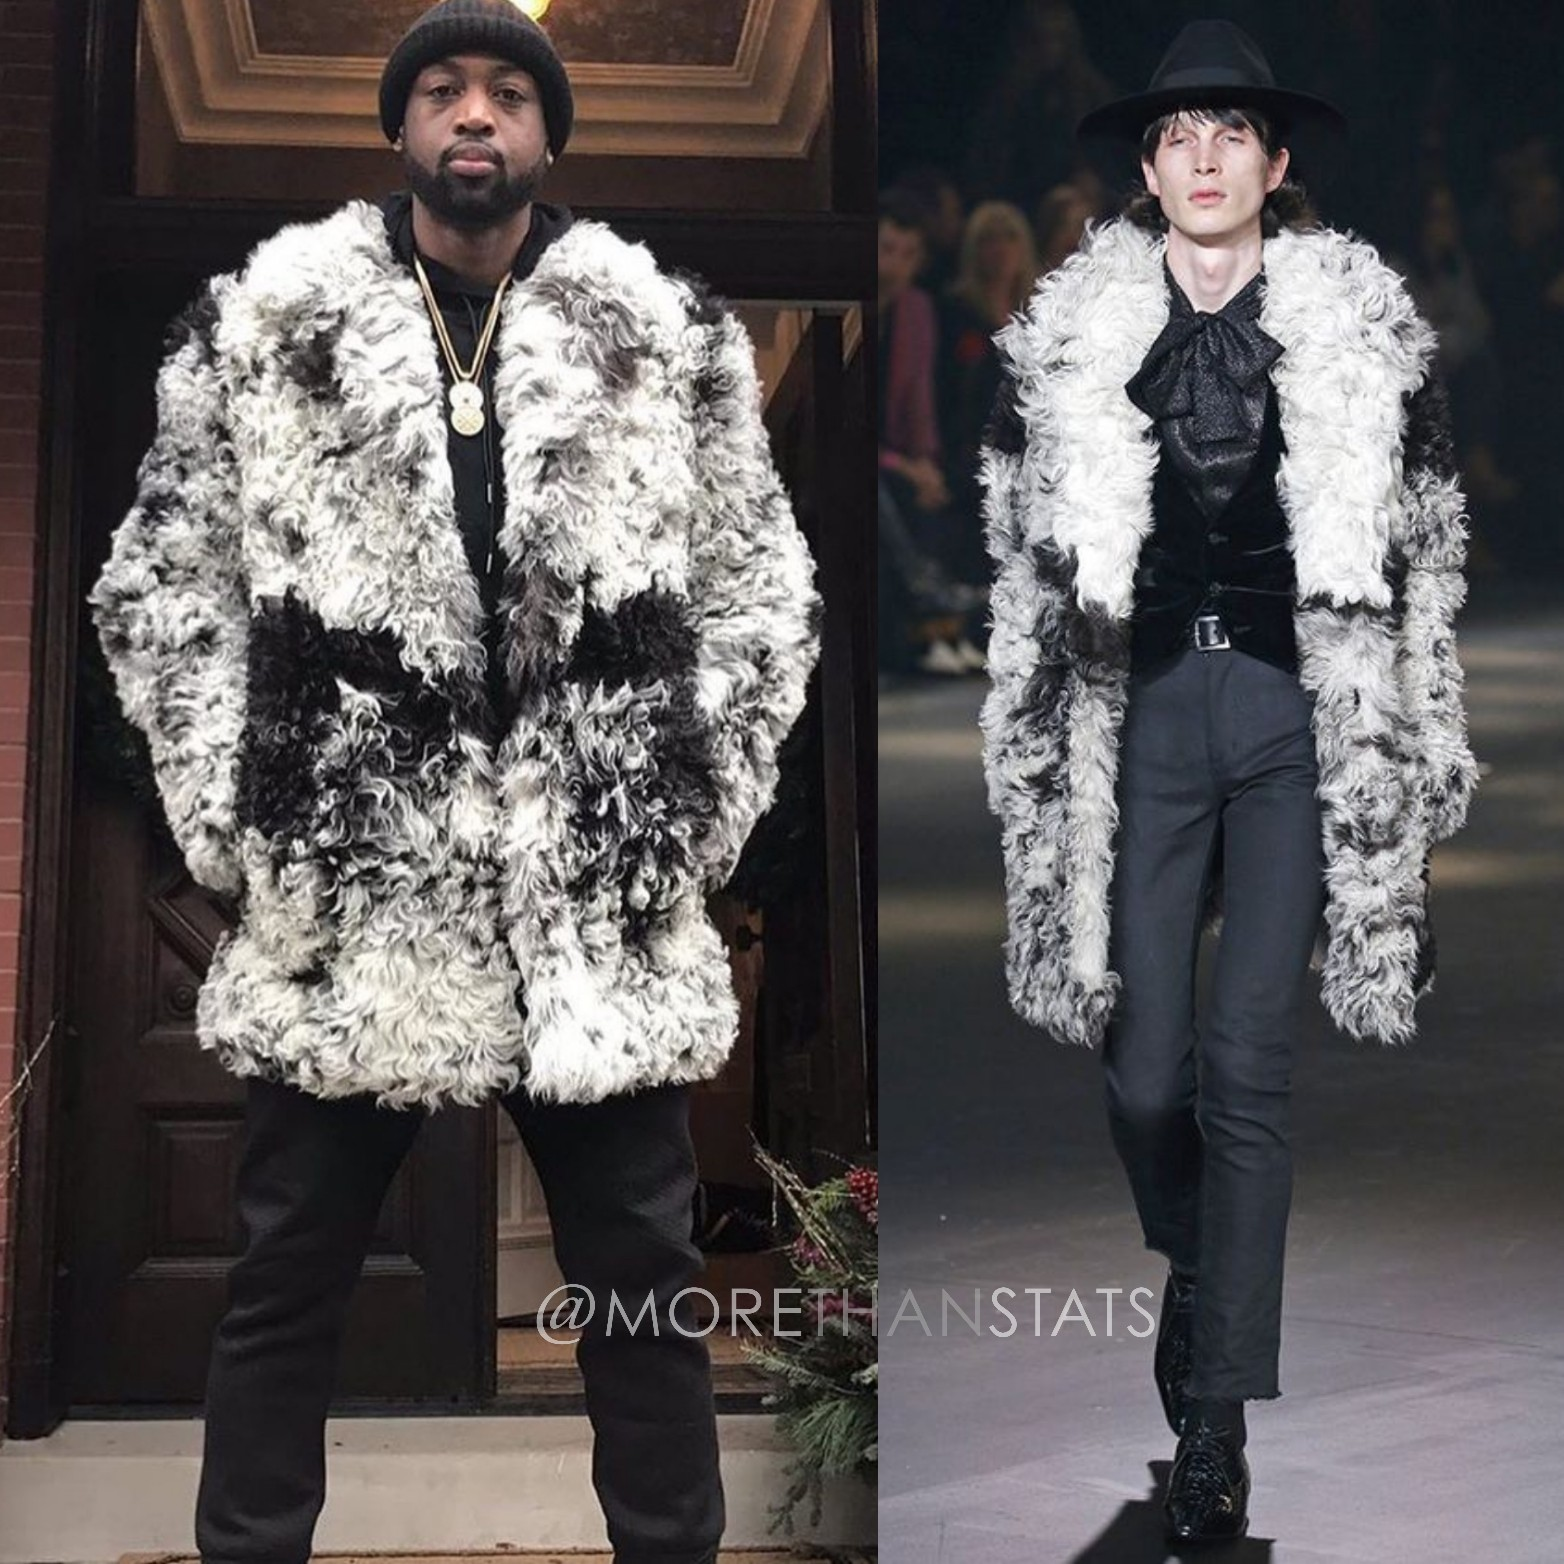 Dwyane Wade's Saint Laurent FW'16 Fur Mens Fashion Coat